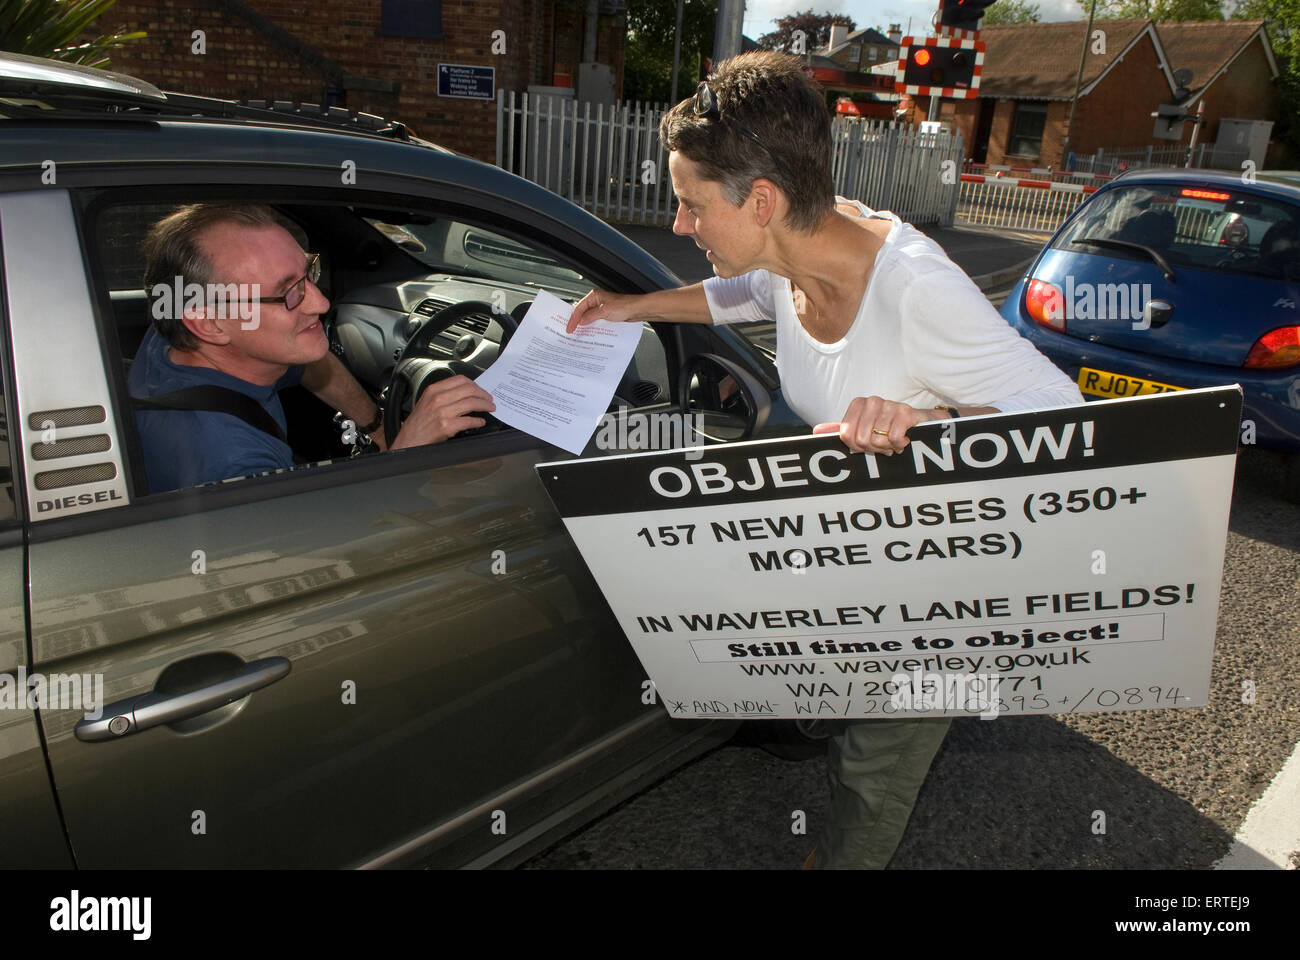 Local resident canvassing a motorist regarding a protest over a proposed new high density housing development which - Stock Image